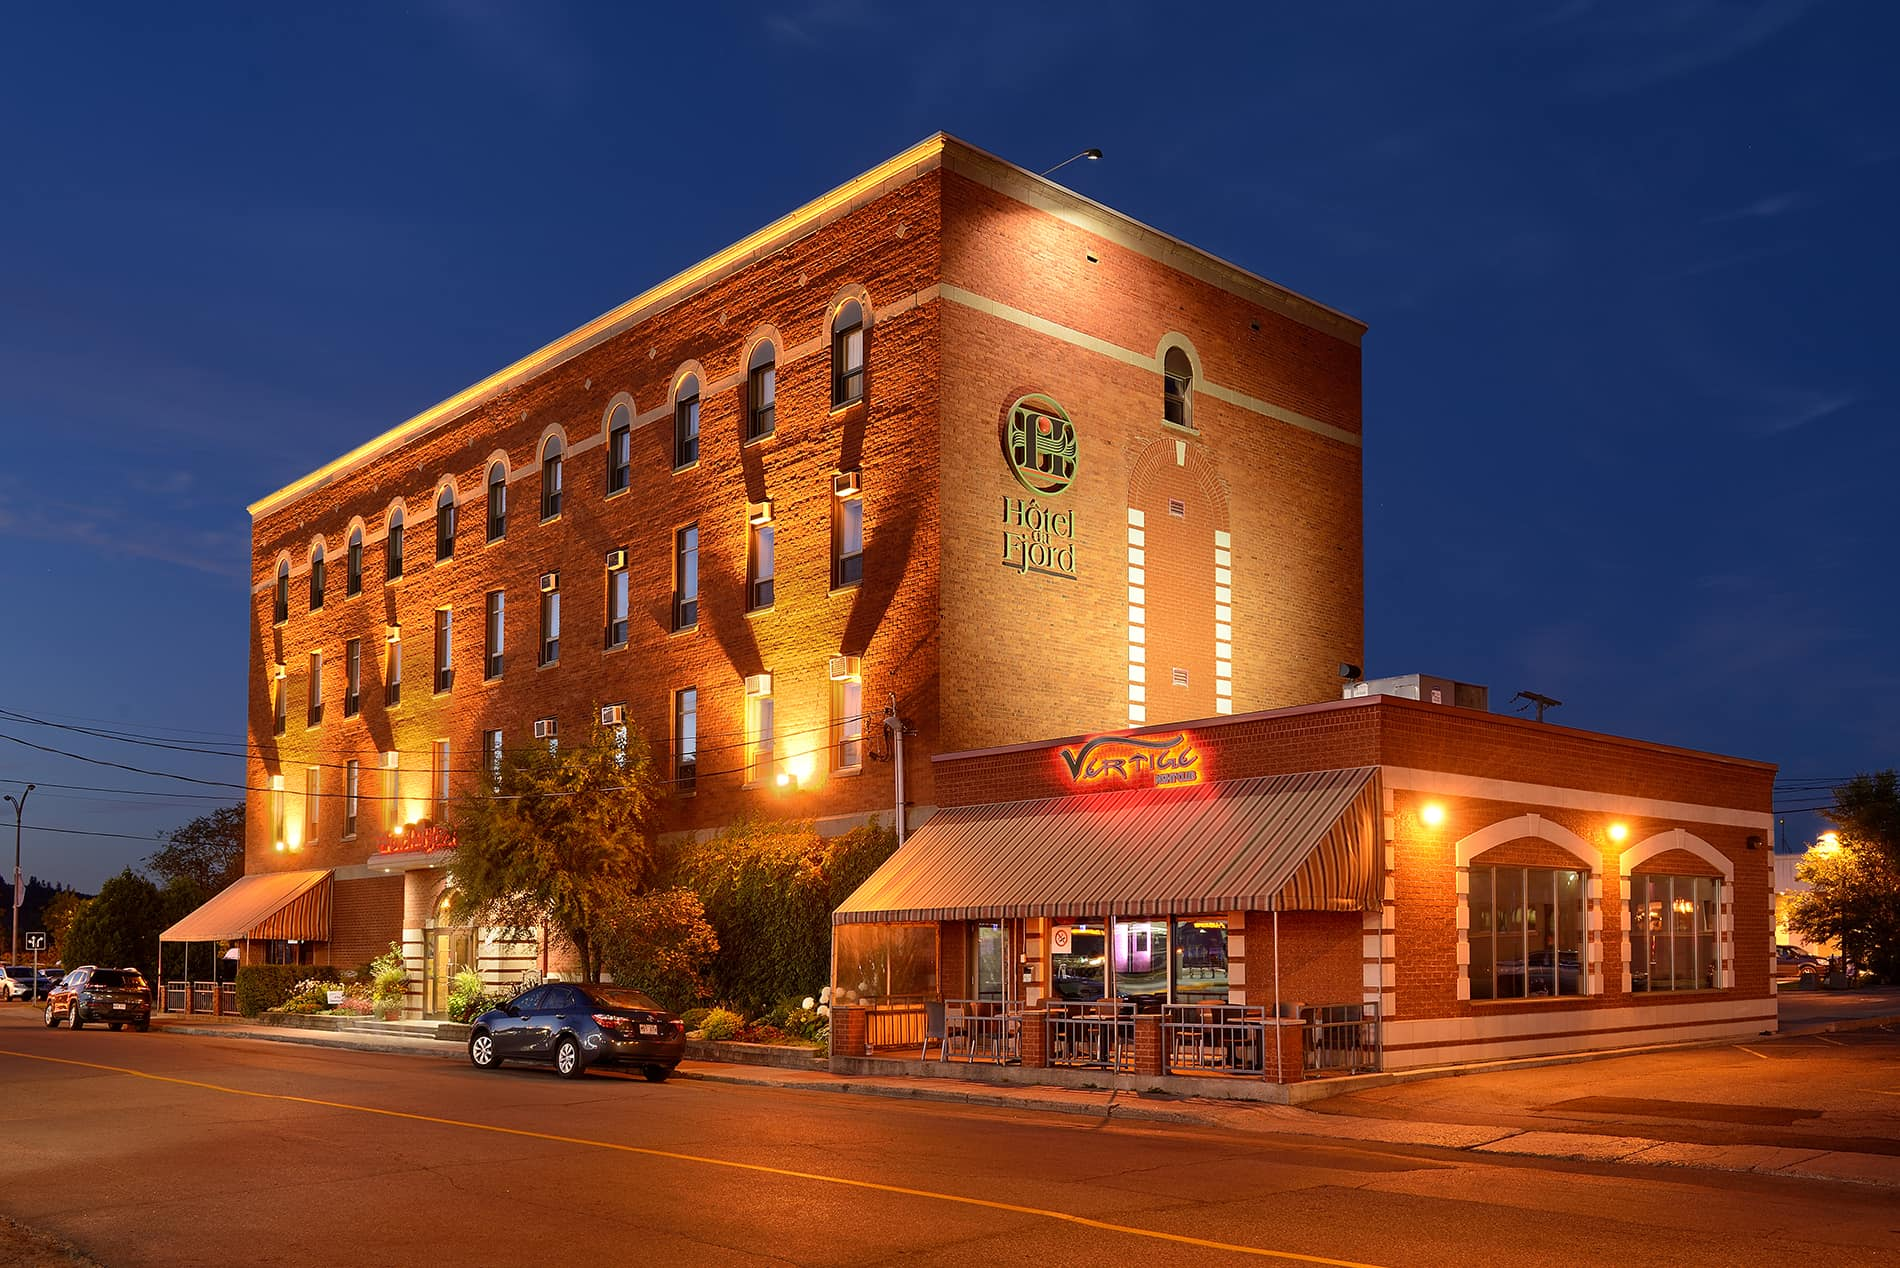 Hôtel Du Fjord Is Nestled In The Heart Of Downtown Chicoutimi And One Top Places To Stay Saguenay Due Its Convenient Location